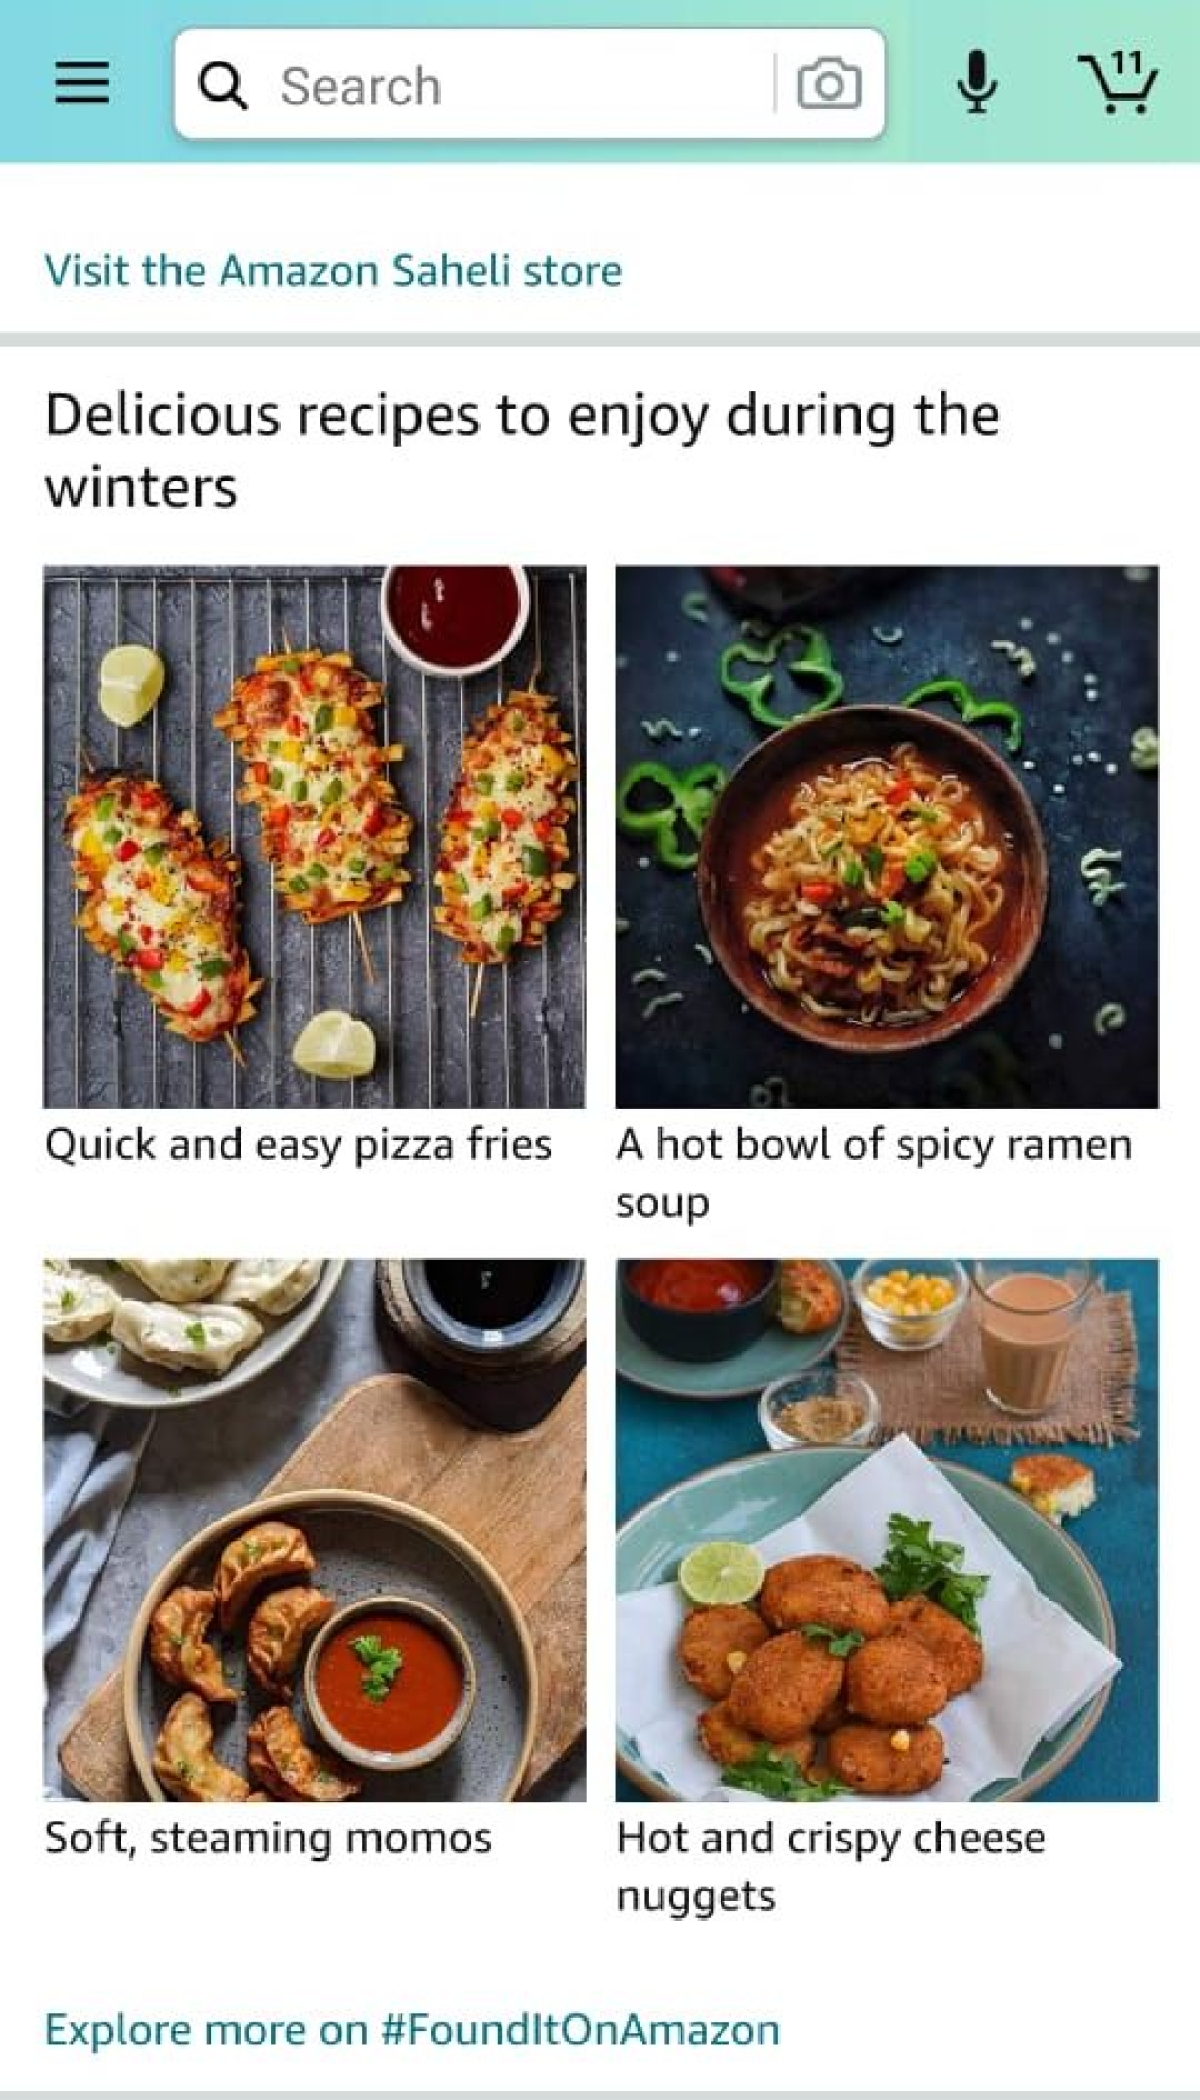 Photos of French fries, noodles and momos... on the Amazon shopping app?